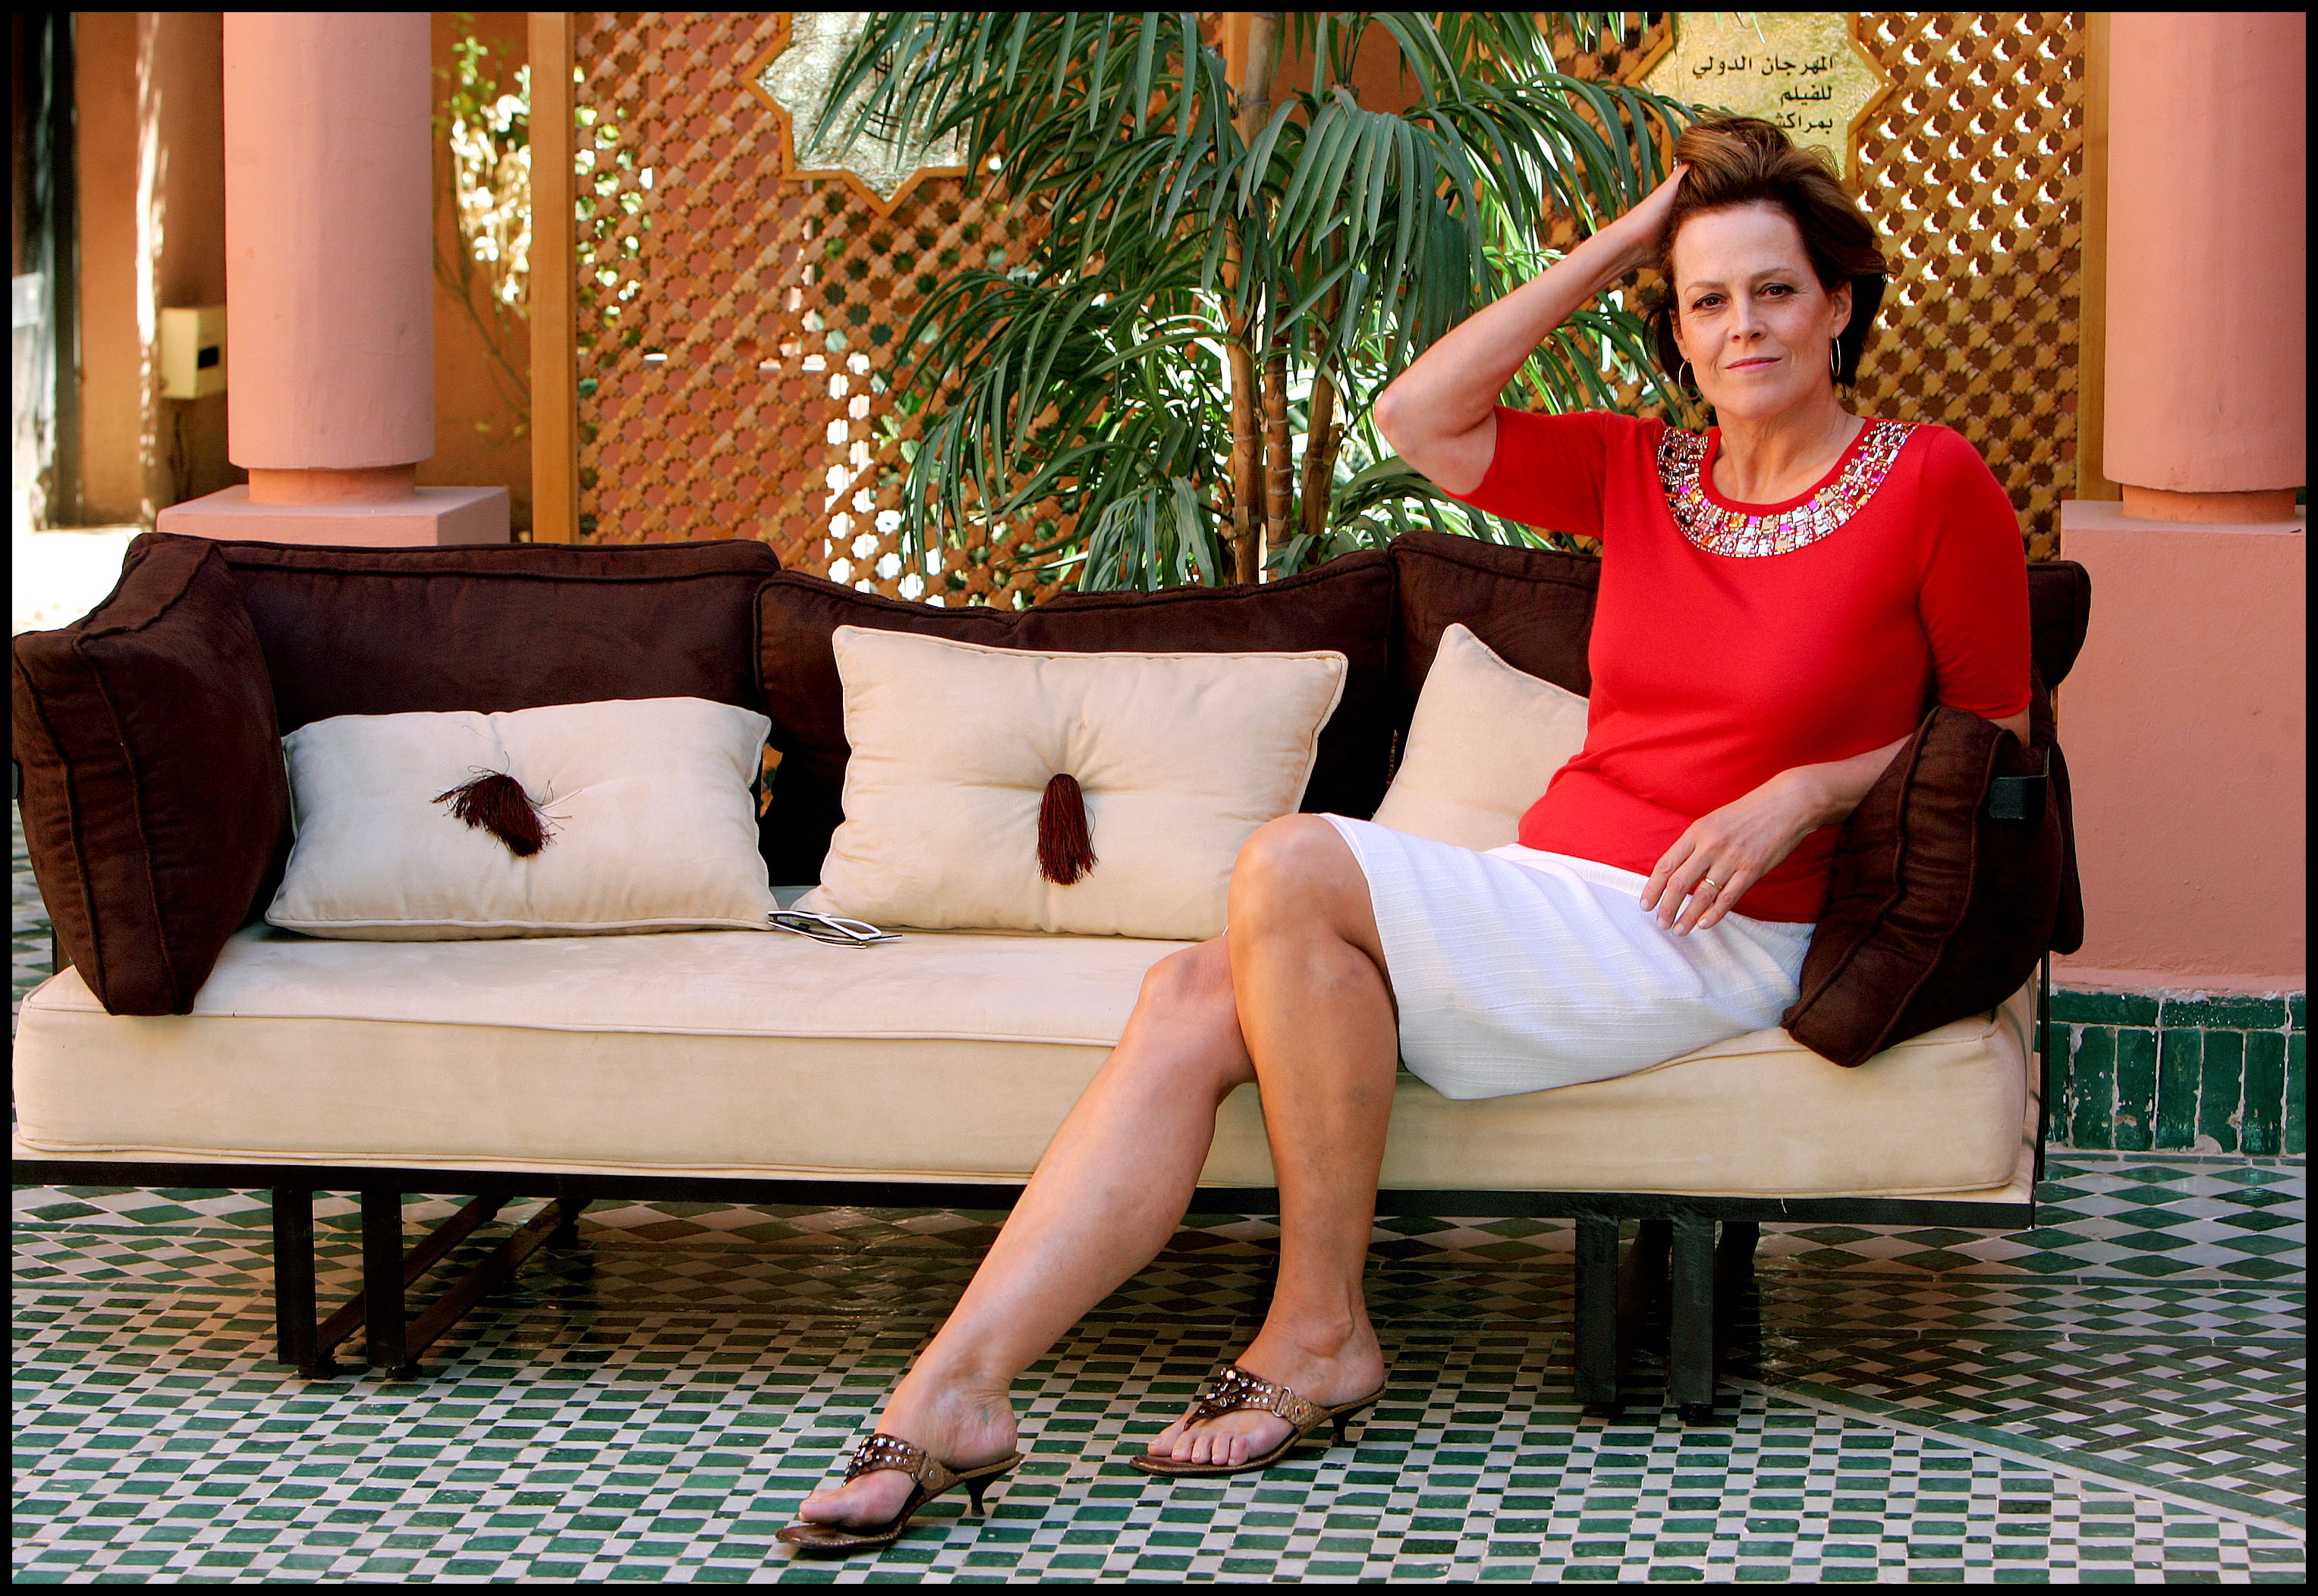 Feet Sigourney Weaver nude (33 foto and video), Sexy, Paparazzi, Twitter, braless 2006